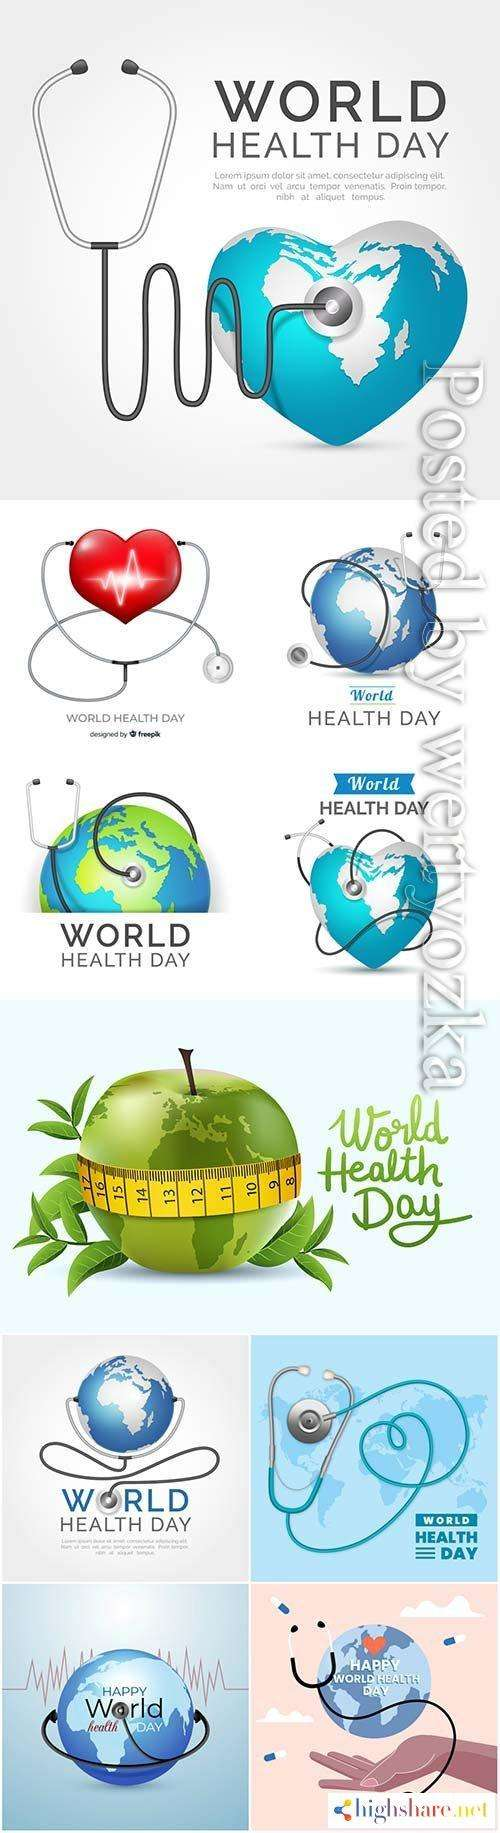 realistic world health day vector background 5f4382e1efed6 - Realistic world health day vector background